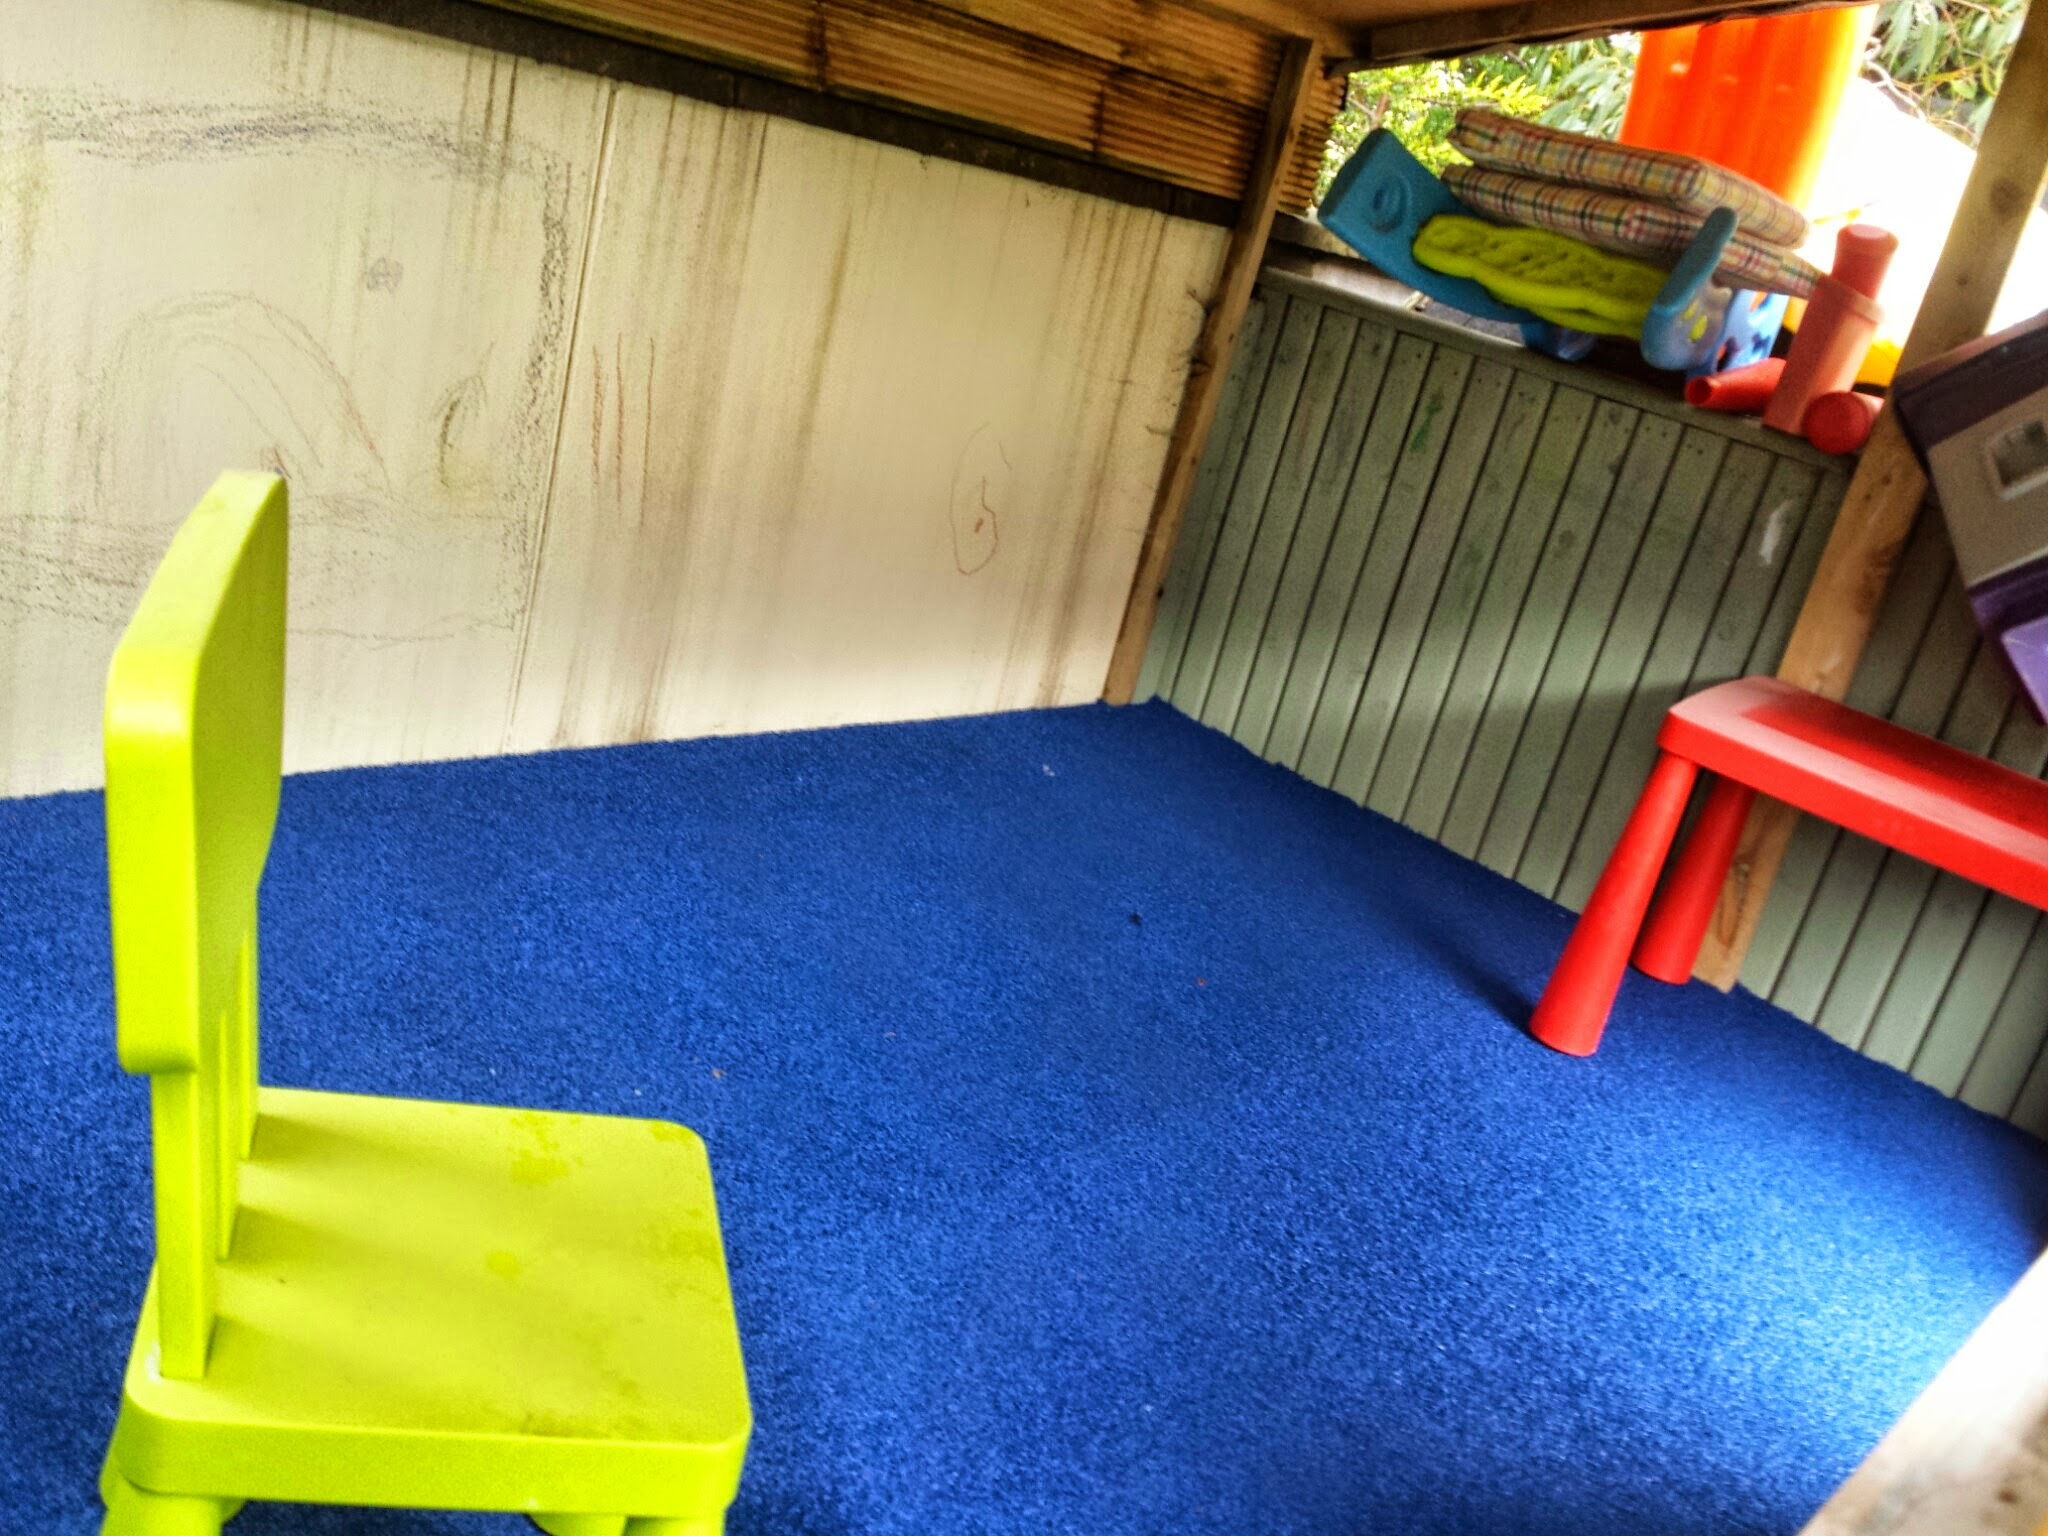 Blue TigerPlay installed on floor of treehouse